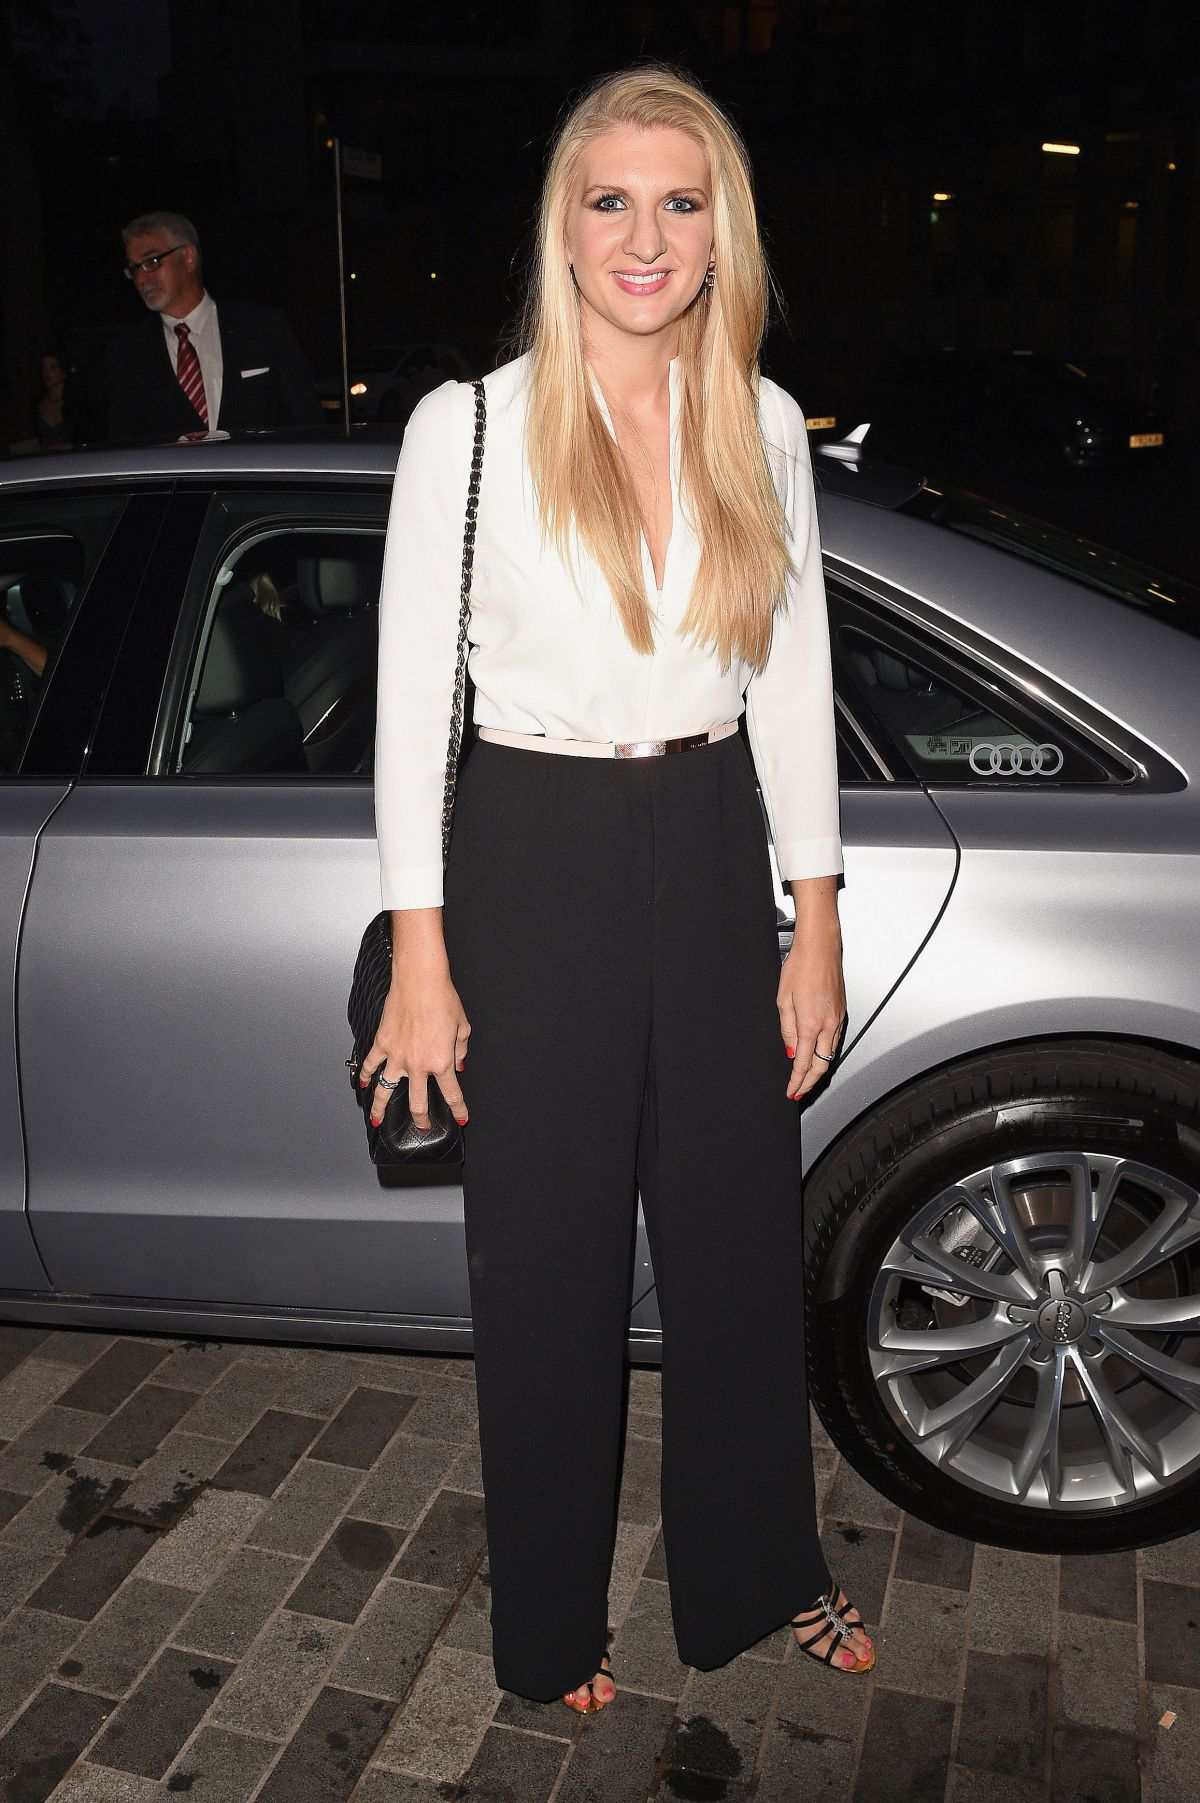 REBECCA ADLINGTON at GQ Men of the Year Awards 2016 in London 09/06/2016